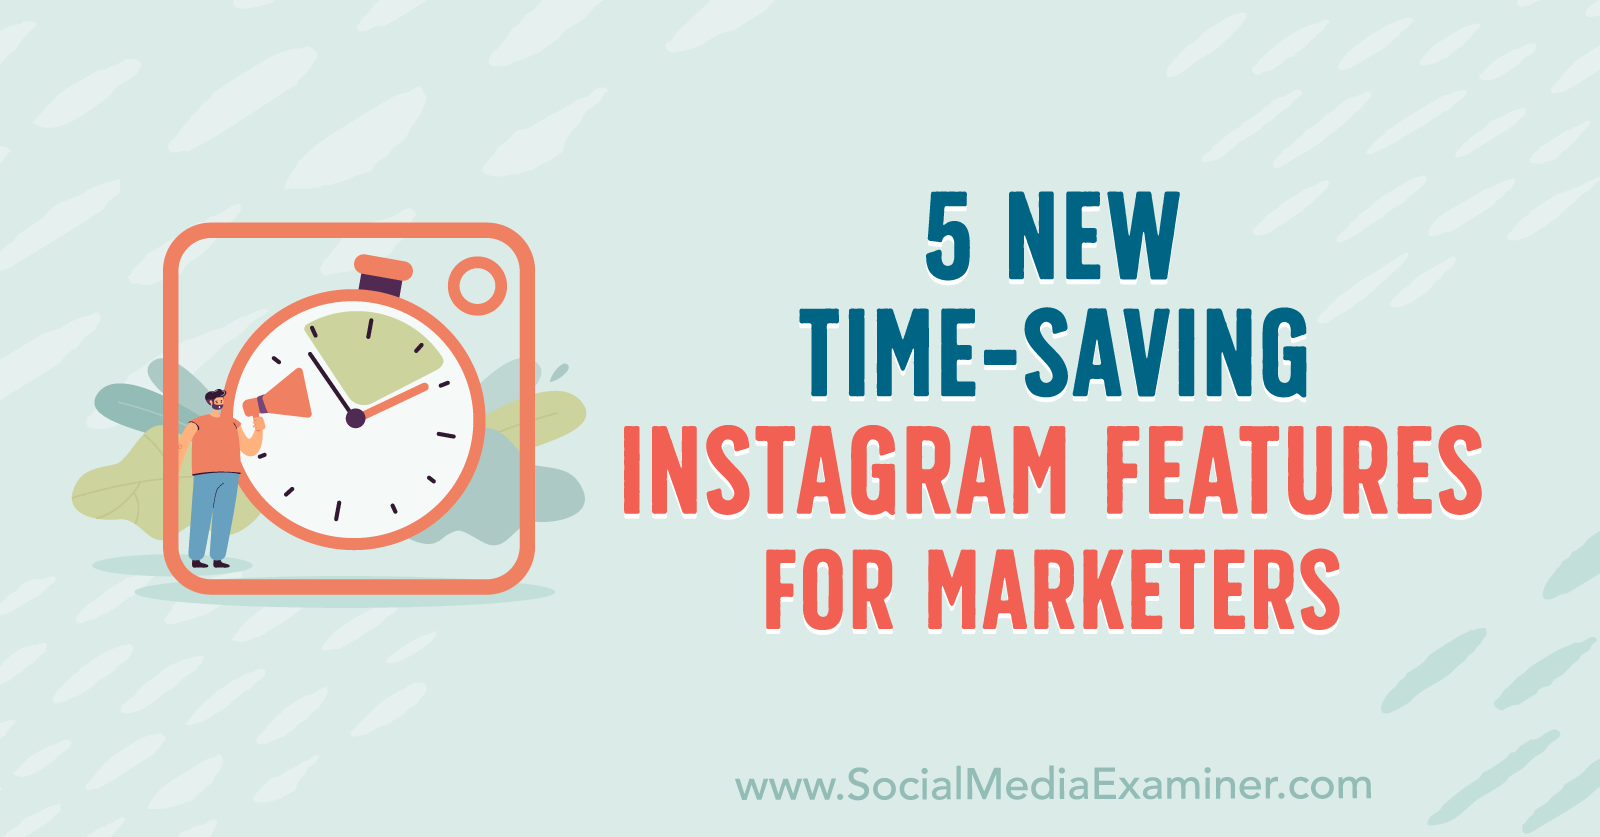 5 New Time-Saving Instagram Features for Marketers by Anna Sonnenberg on Social Media Examiner.